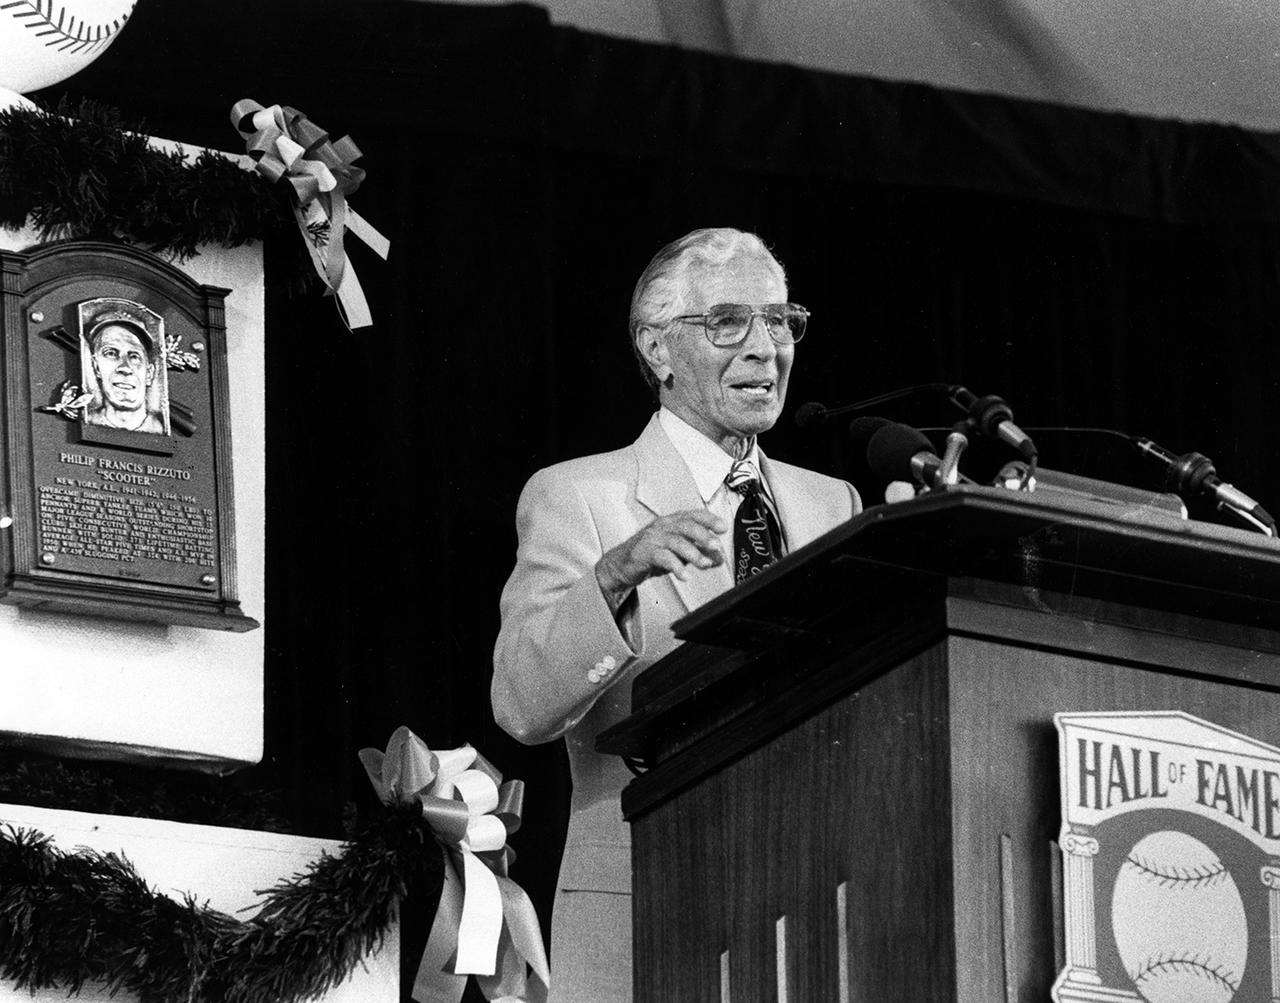 Phil Rizzuto 1994 Hall of Fame Induction Speech